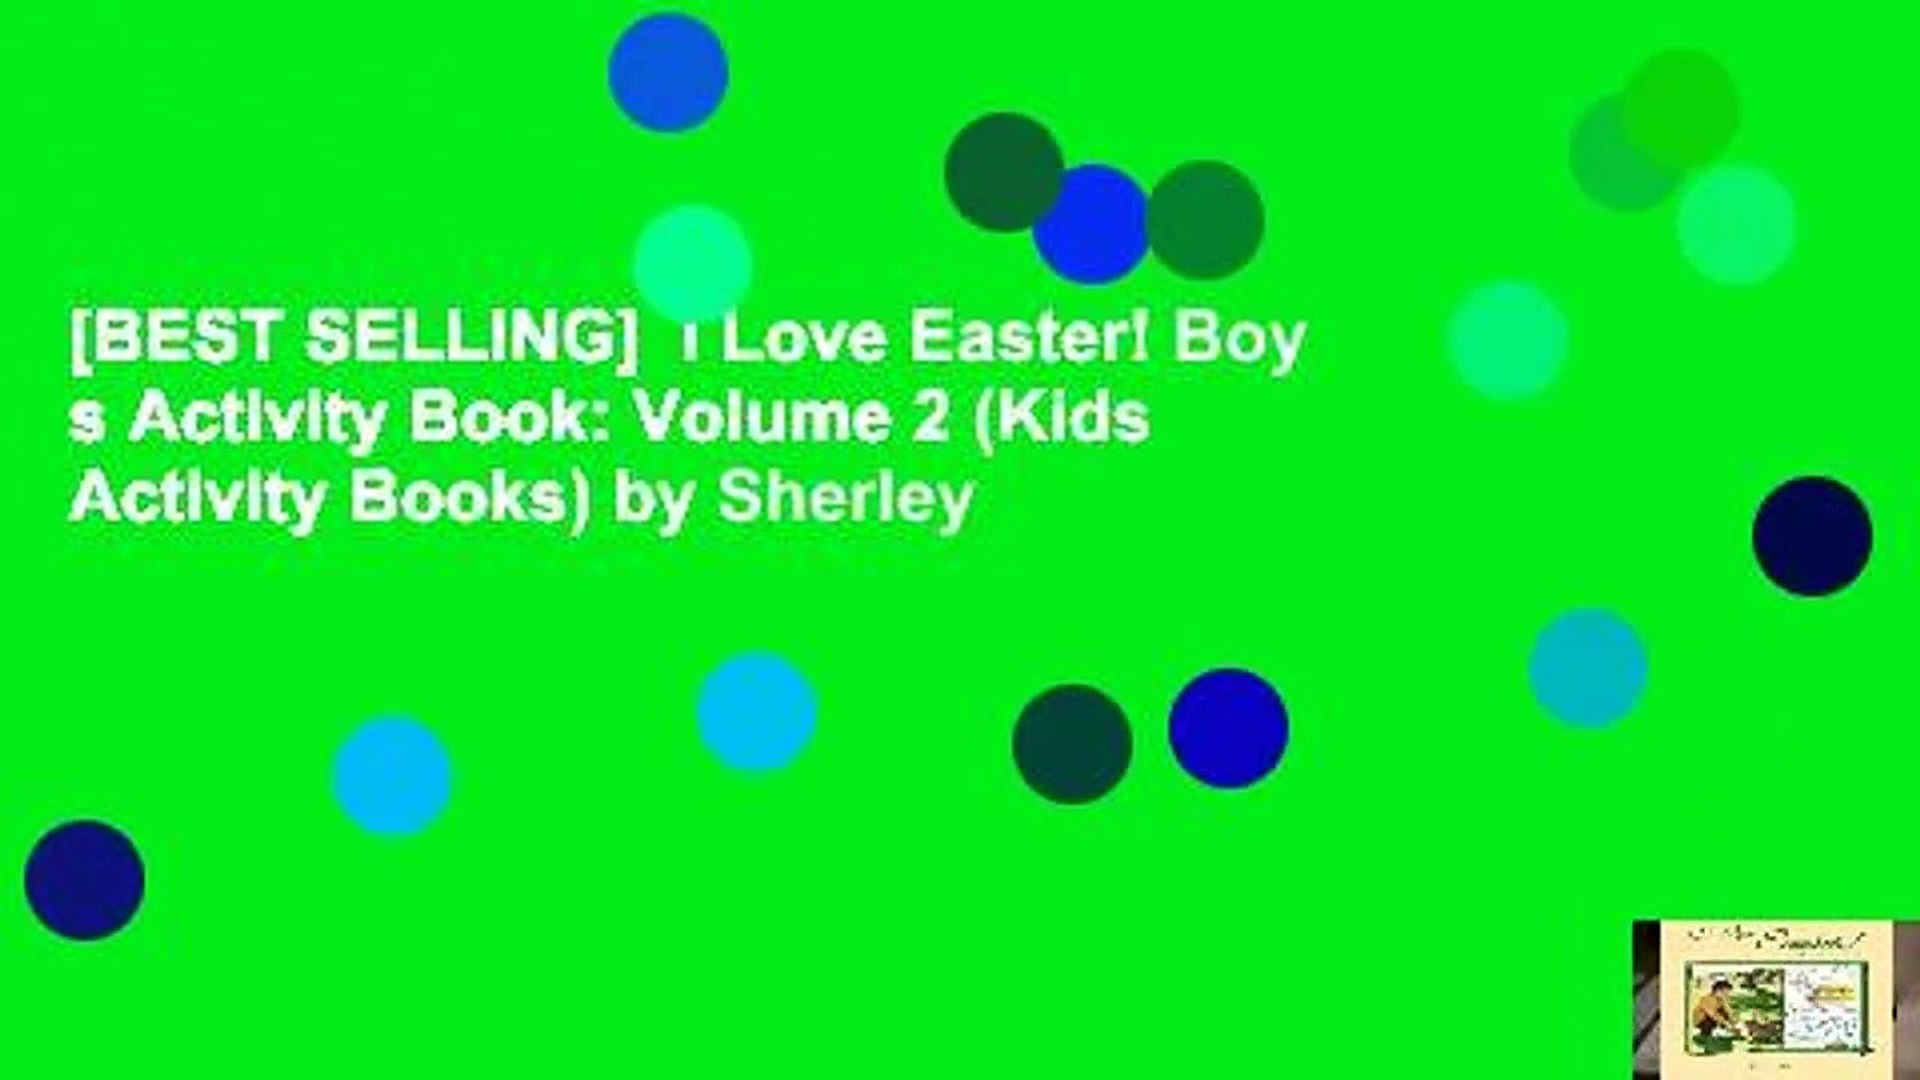 [BEST SELLING]  I Love Easter! Boy s Activity Book: Volume 2 (Kids  Activity Books) by Sherley